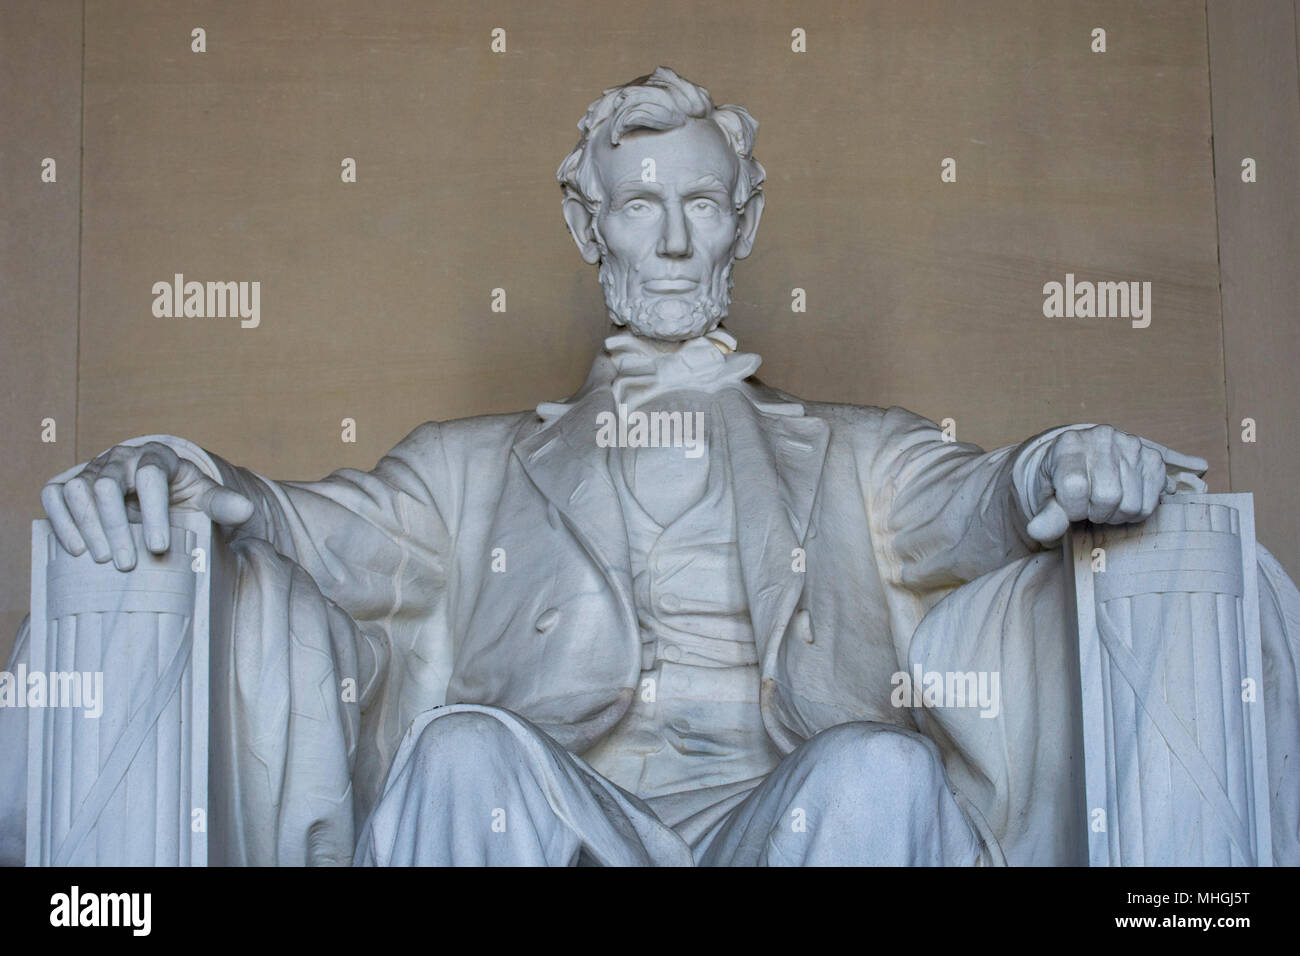 Medium Nahaufnahme der iconnic Skulptur von Abraham Lincoln von Bildhauer Daniel Chester French, am Lincoln Memorial in Washington, DC. Stockbild